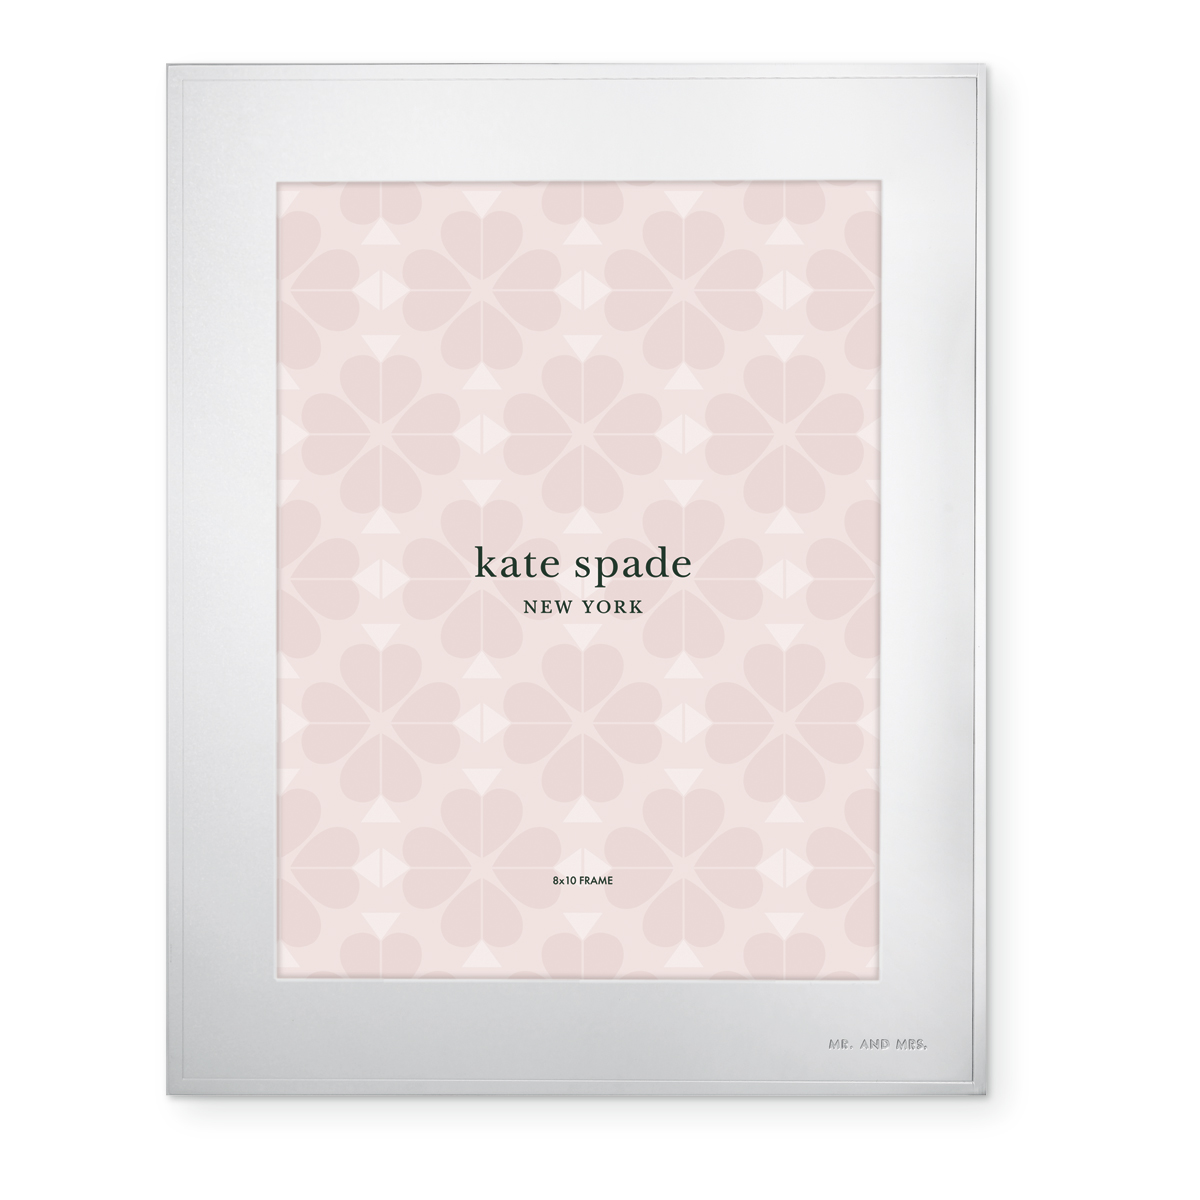 "Lenox kate spade Darling Point 8x10"" Picture Frame"